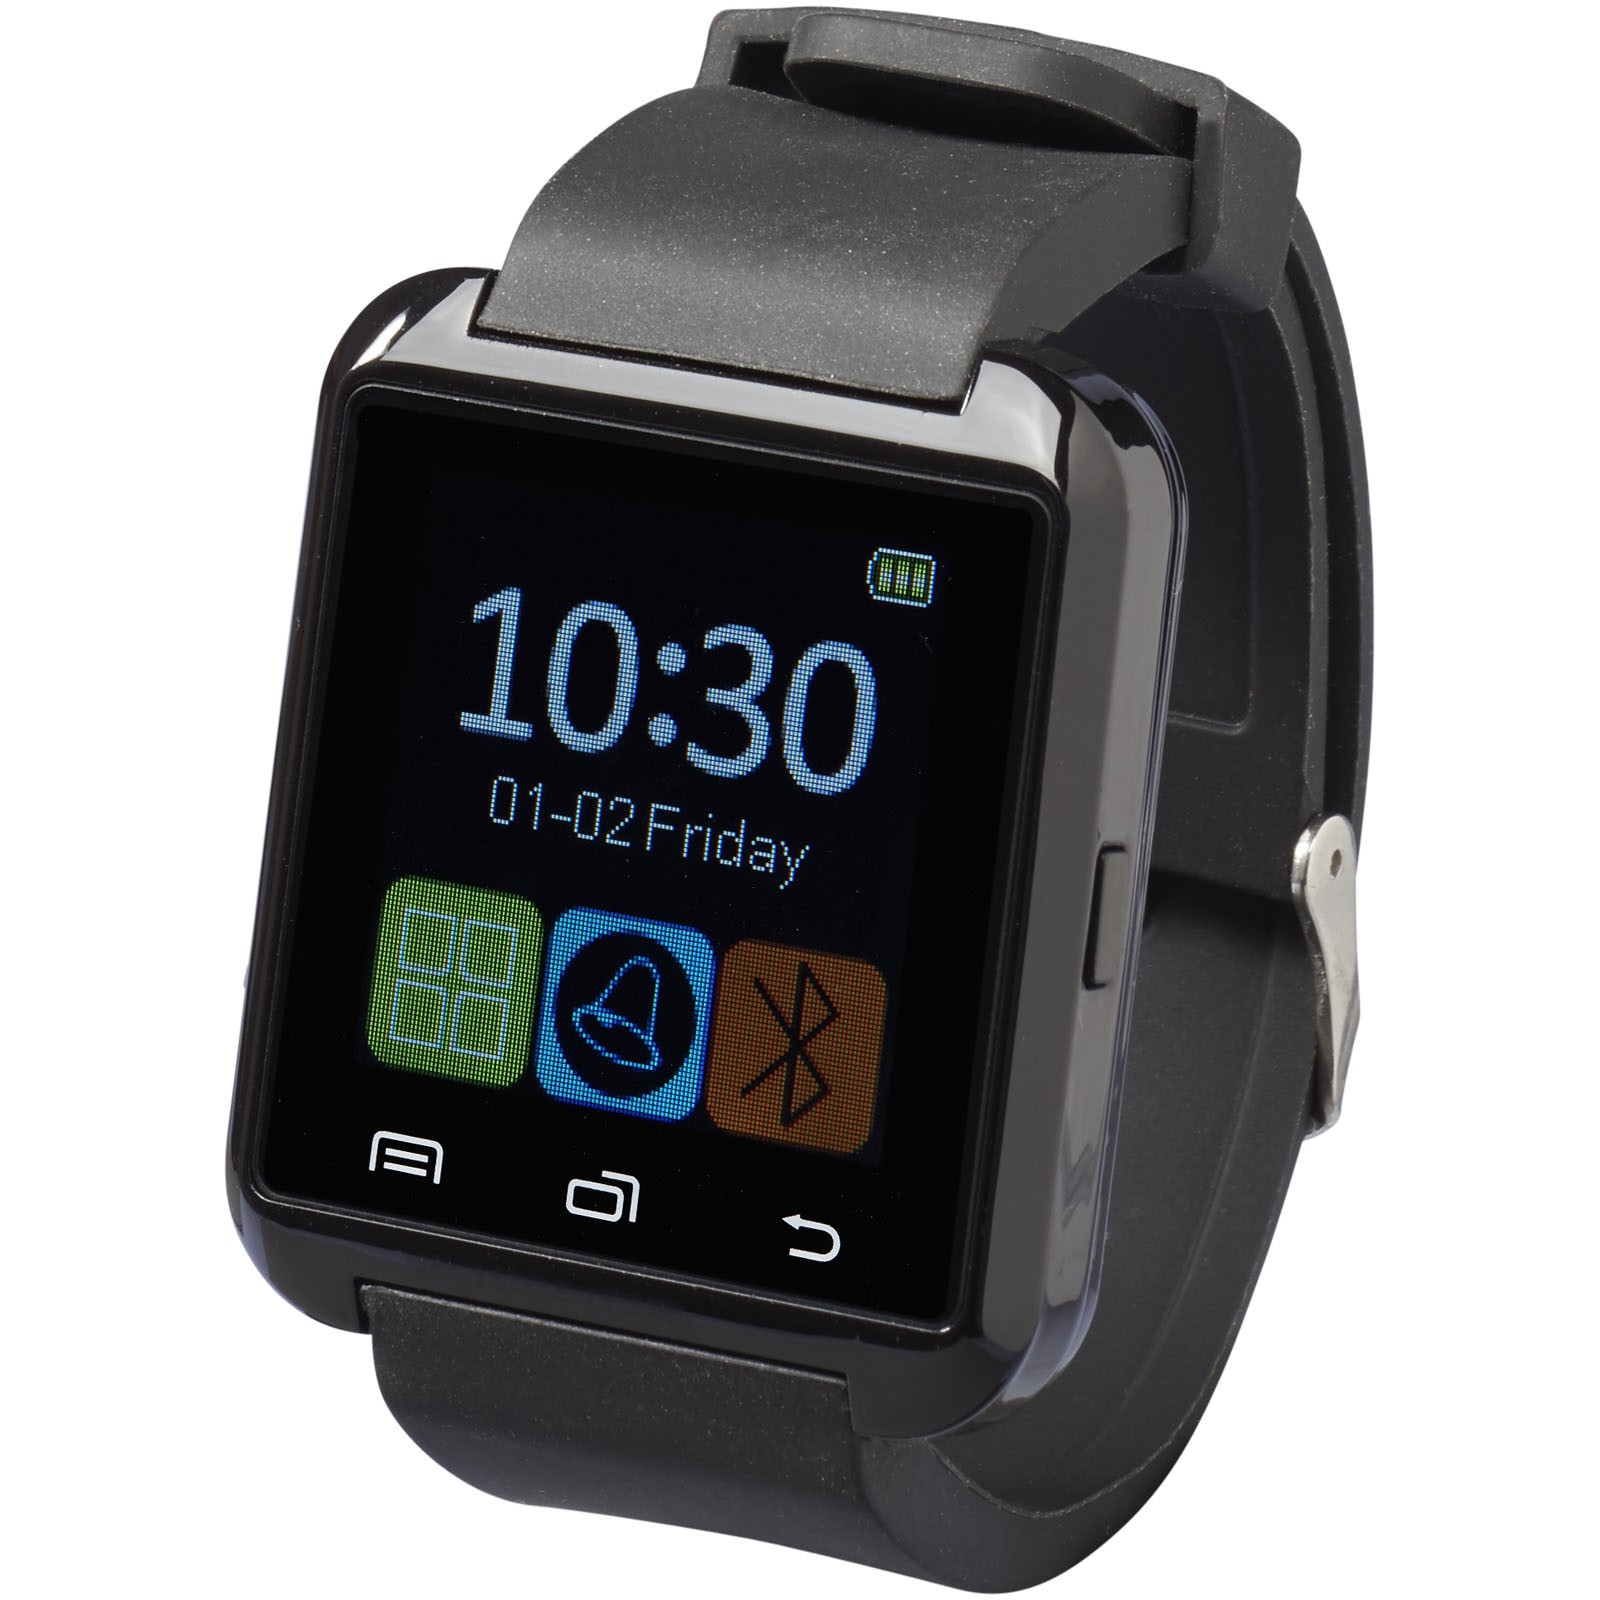 22 Best Smart watch images | Smart watch, Camera watch